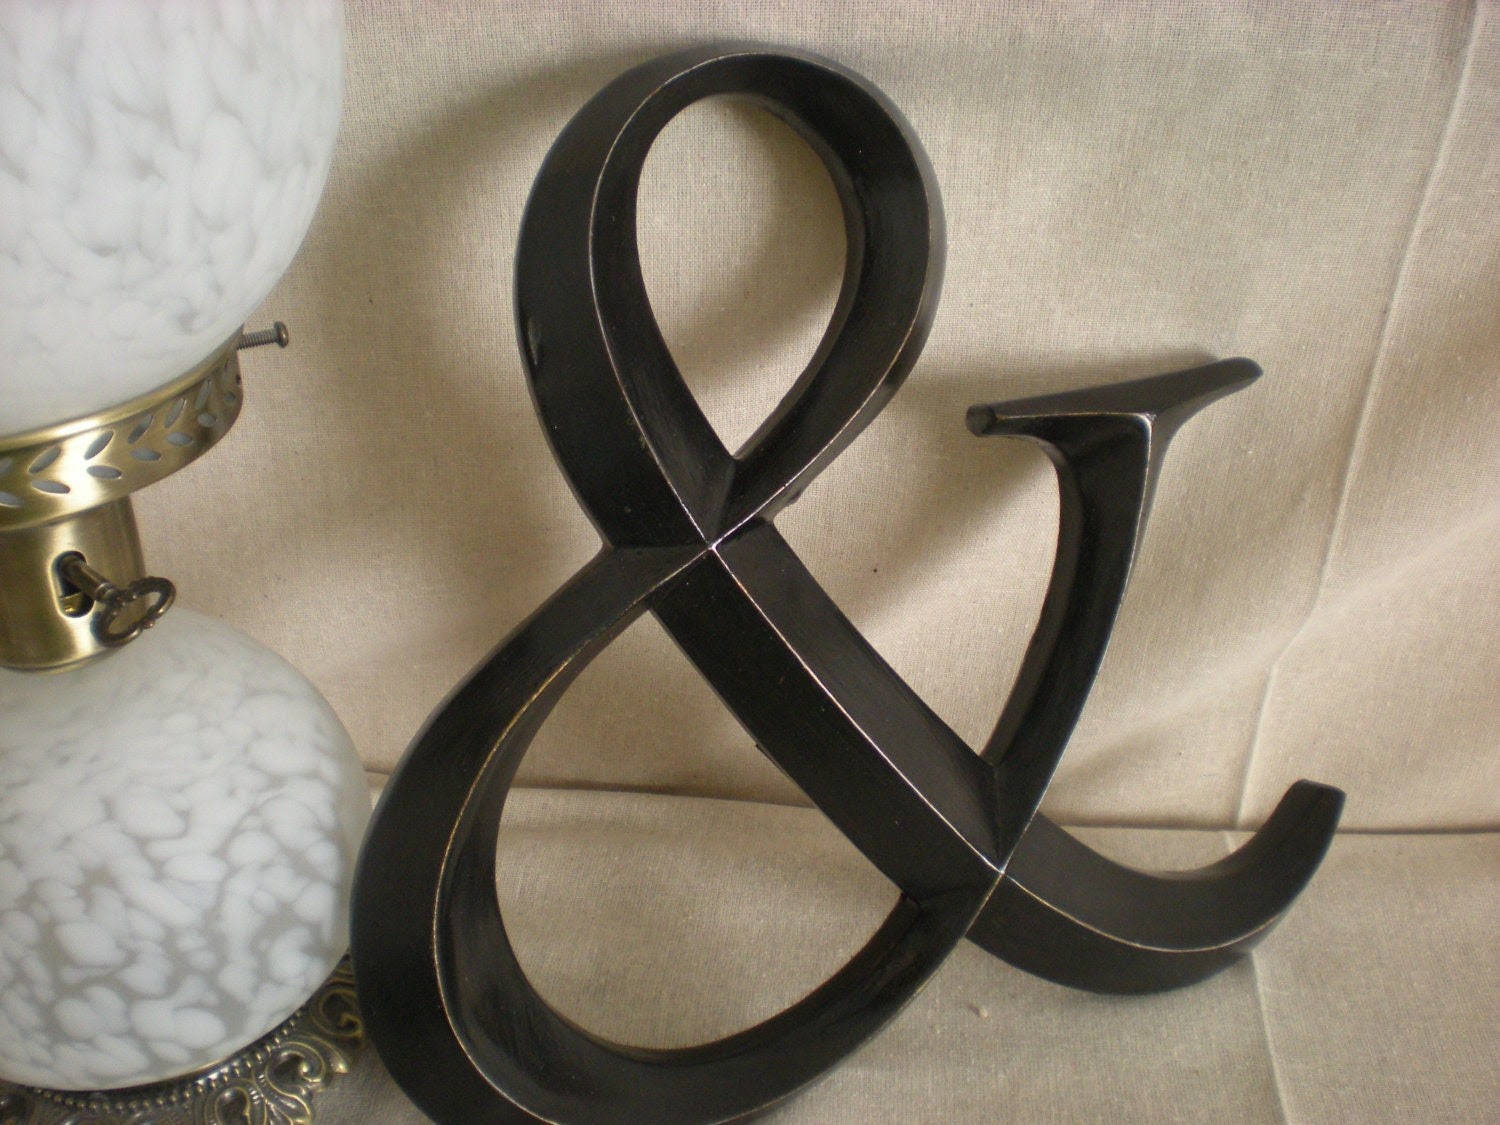 Popular items for Wall Decor on Etsy